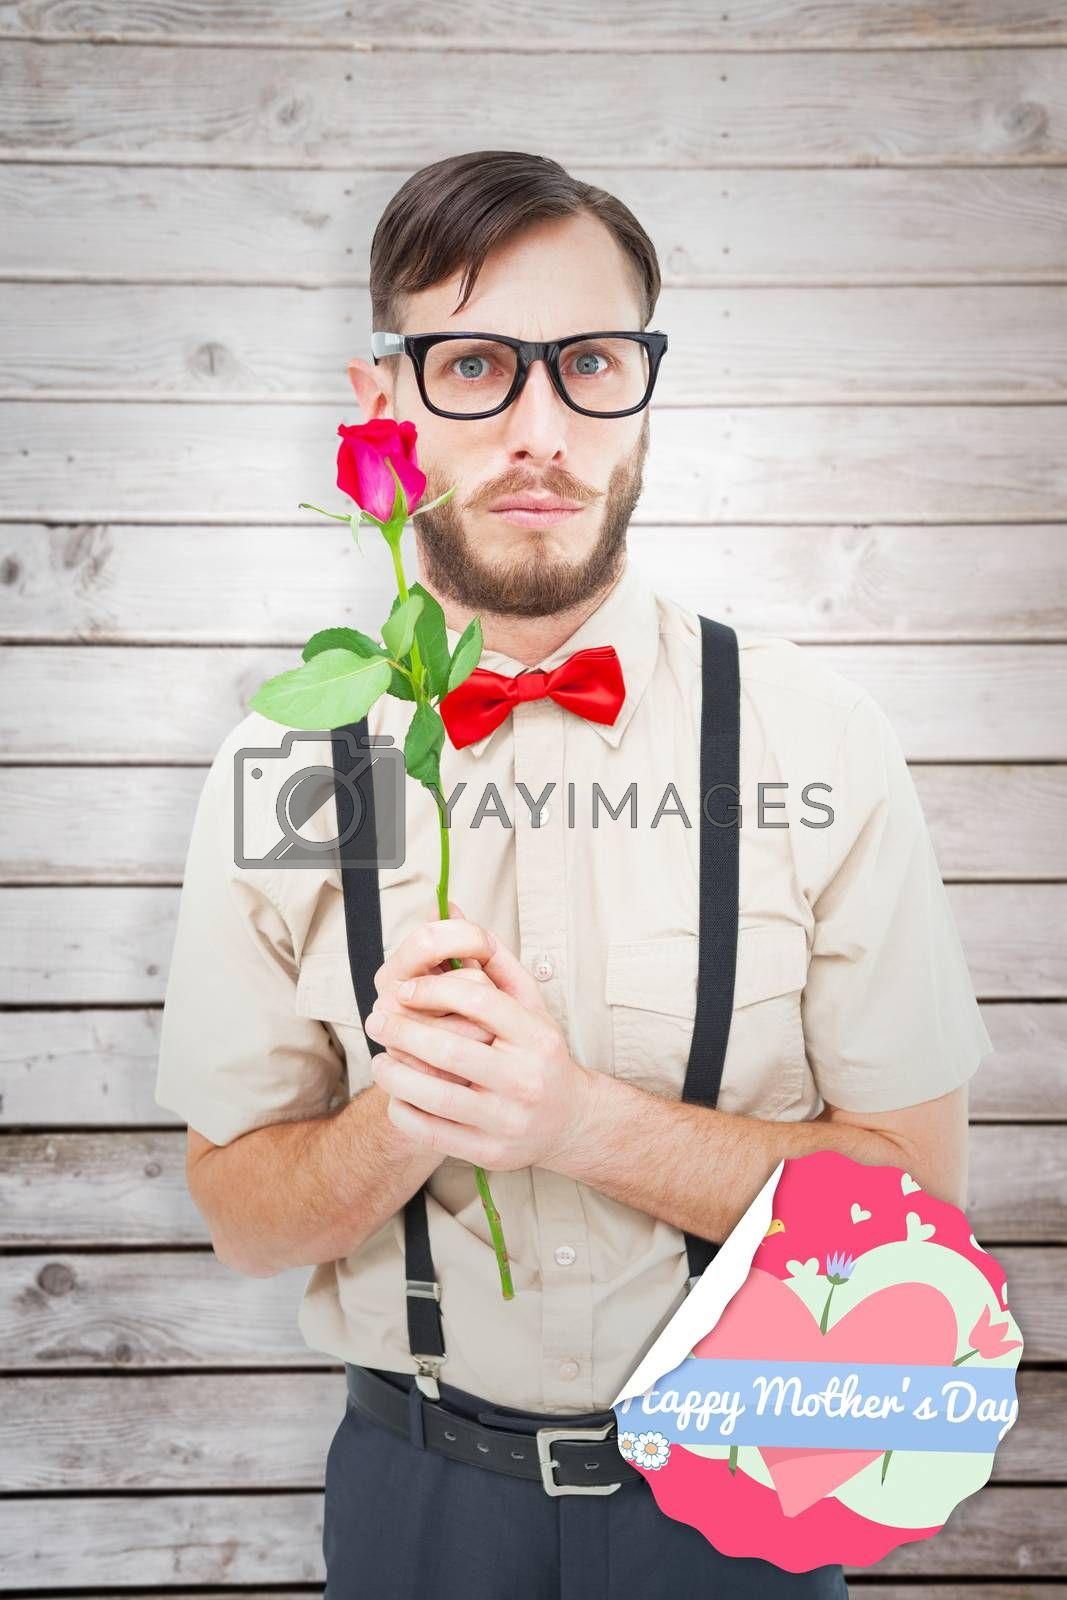 Geeky hipster offering a rose against wooden planks